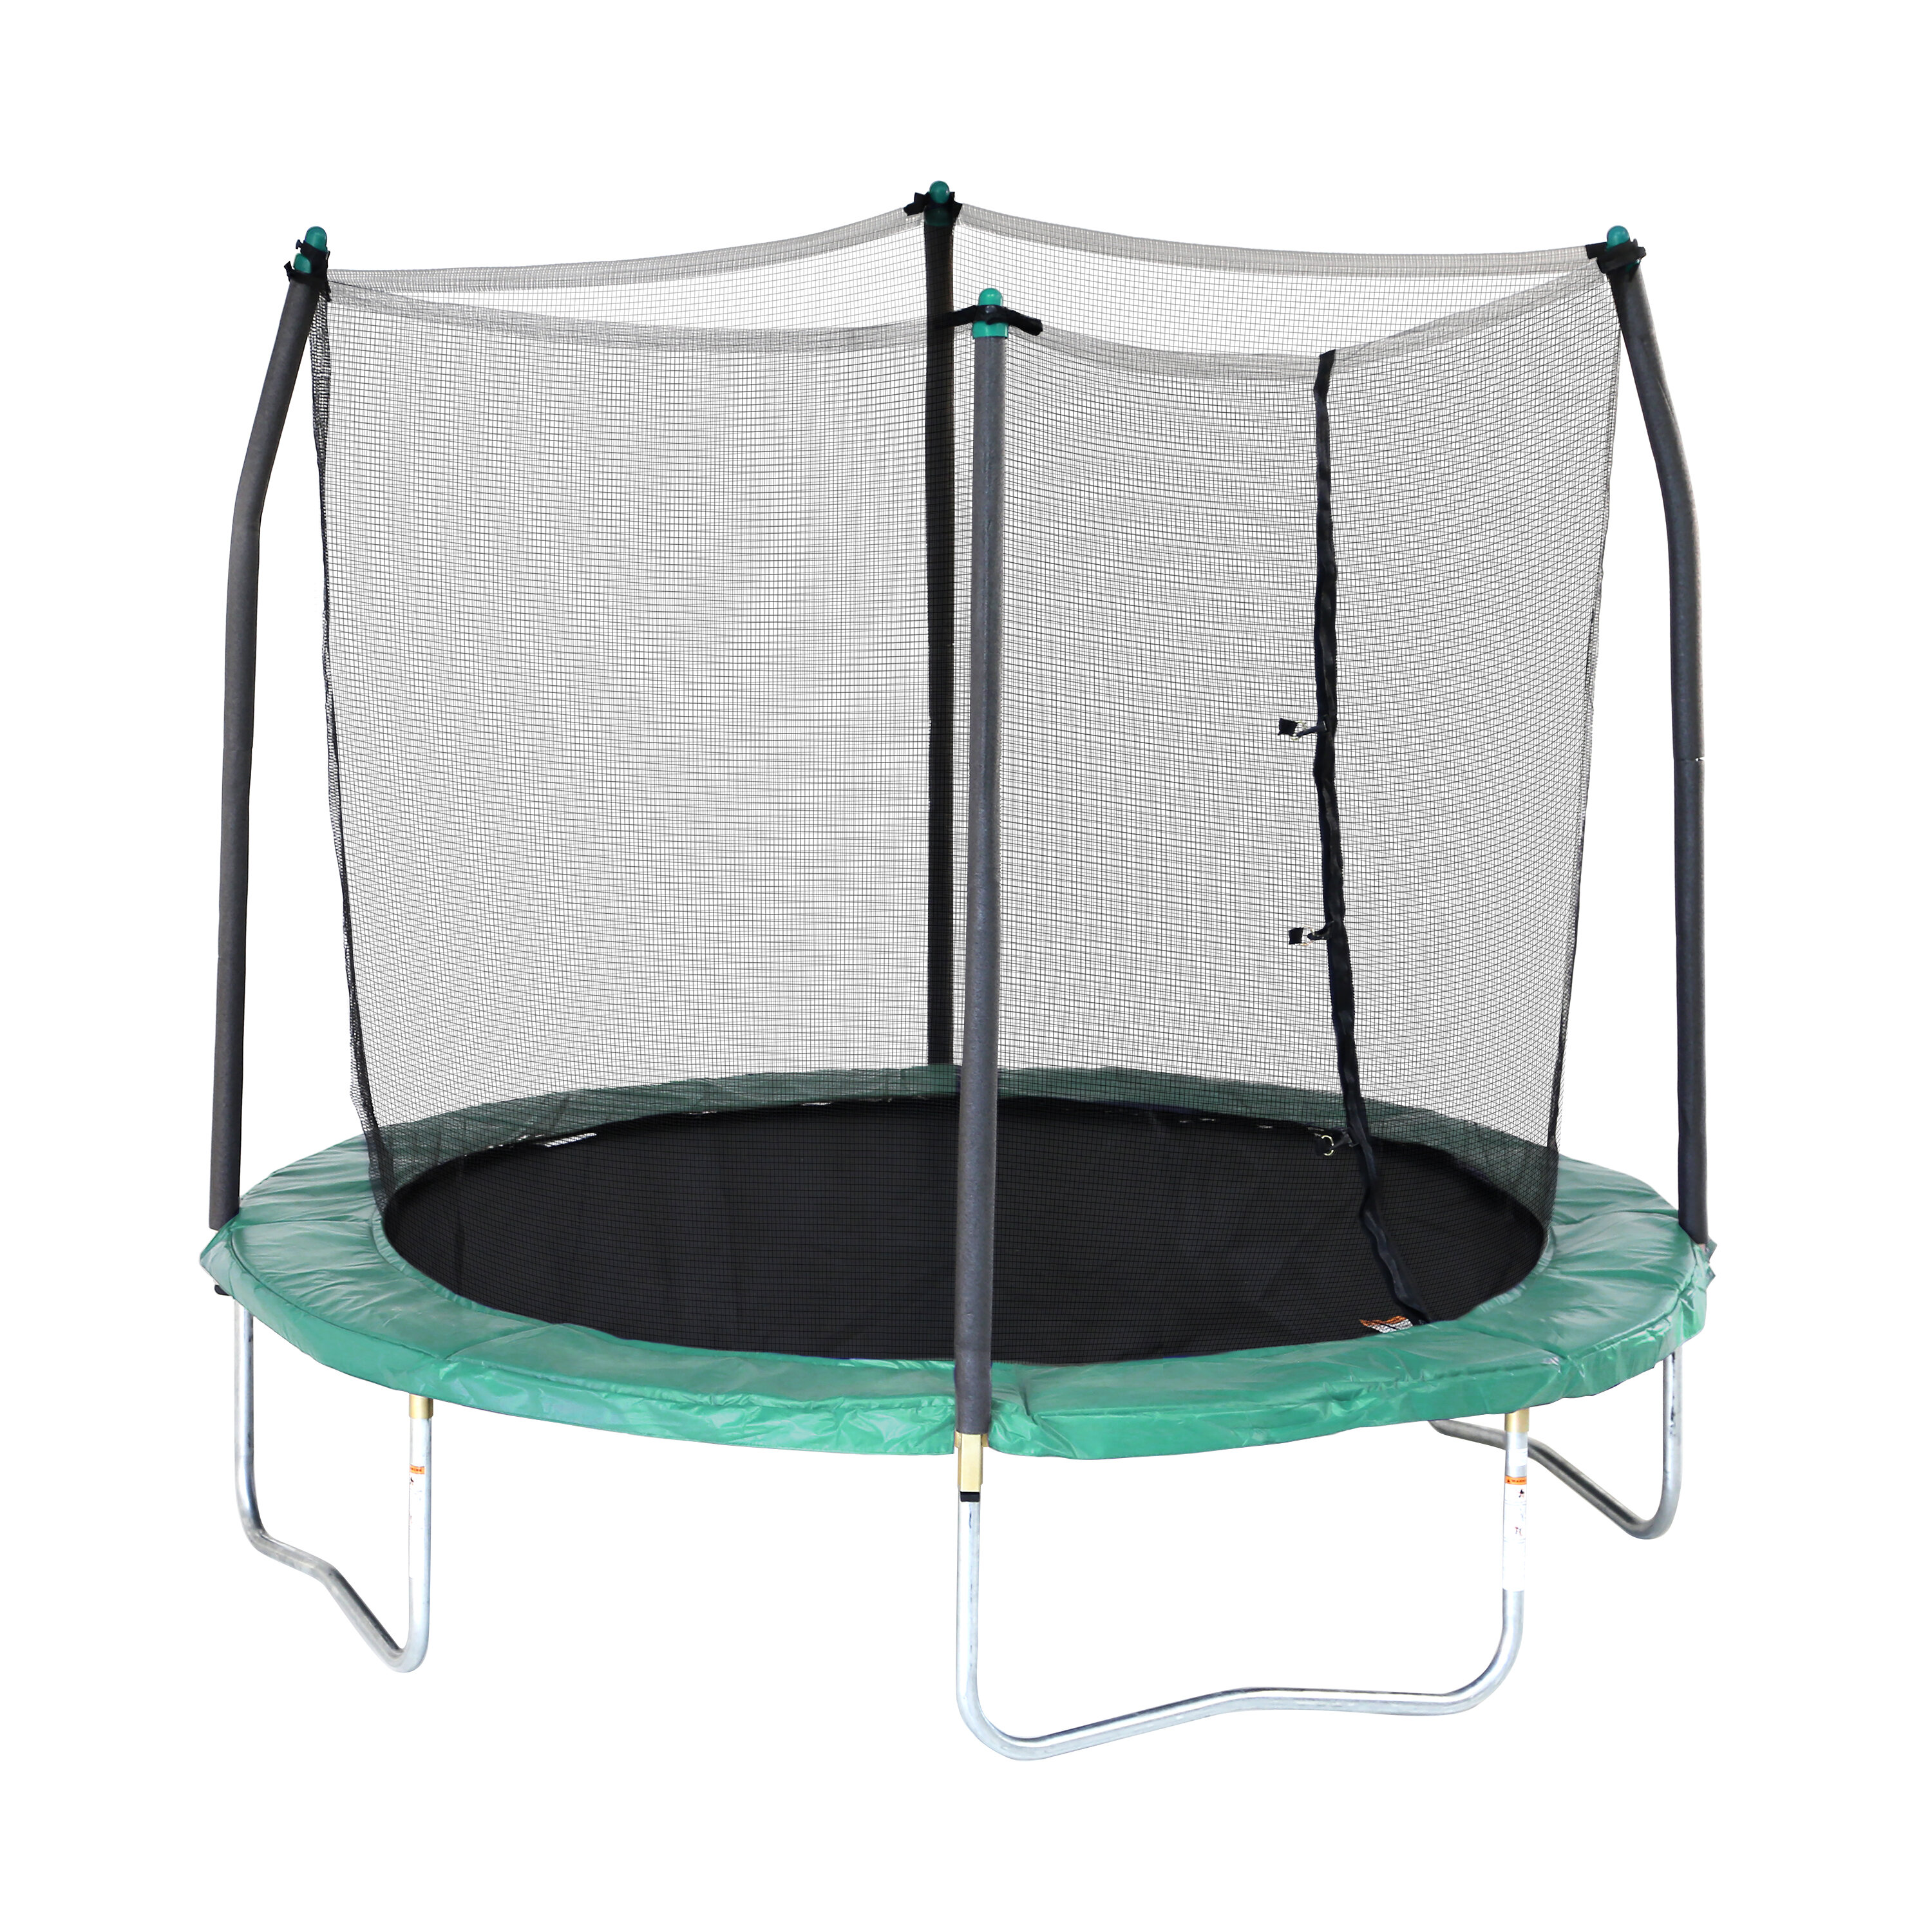 1dd14d934a1f8 Skywalker 8  Round Trampoline with Safety Enclosure   Reviews